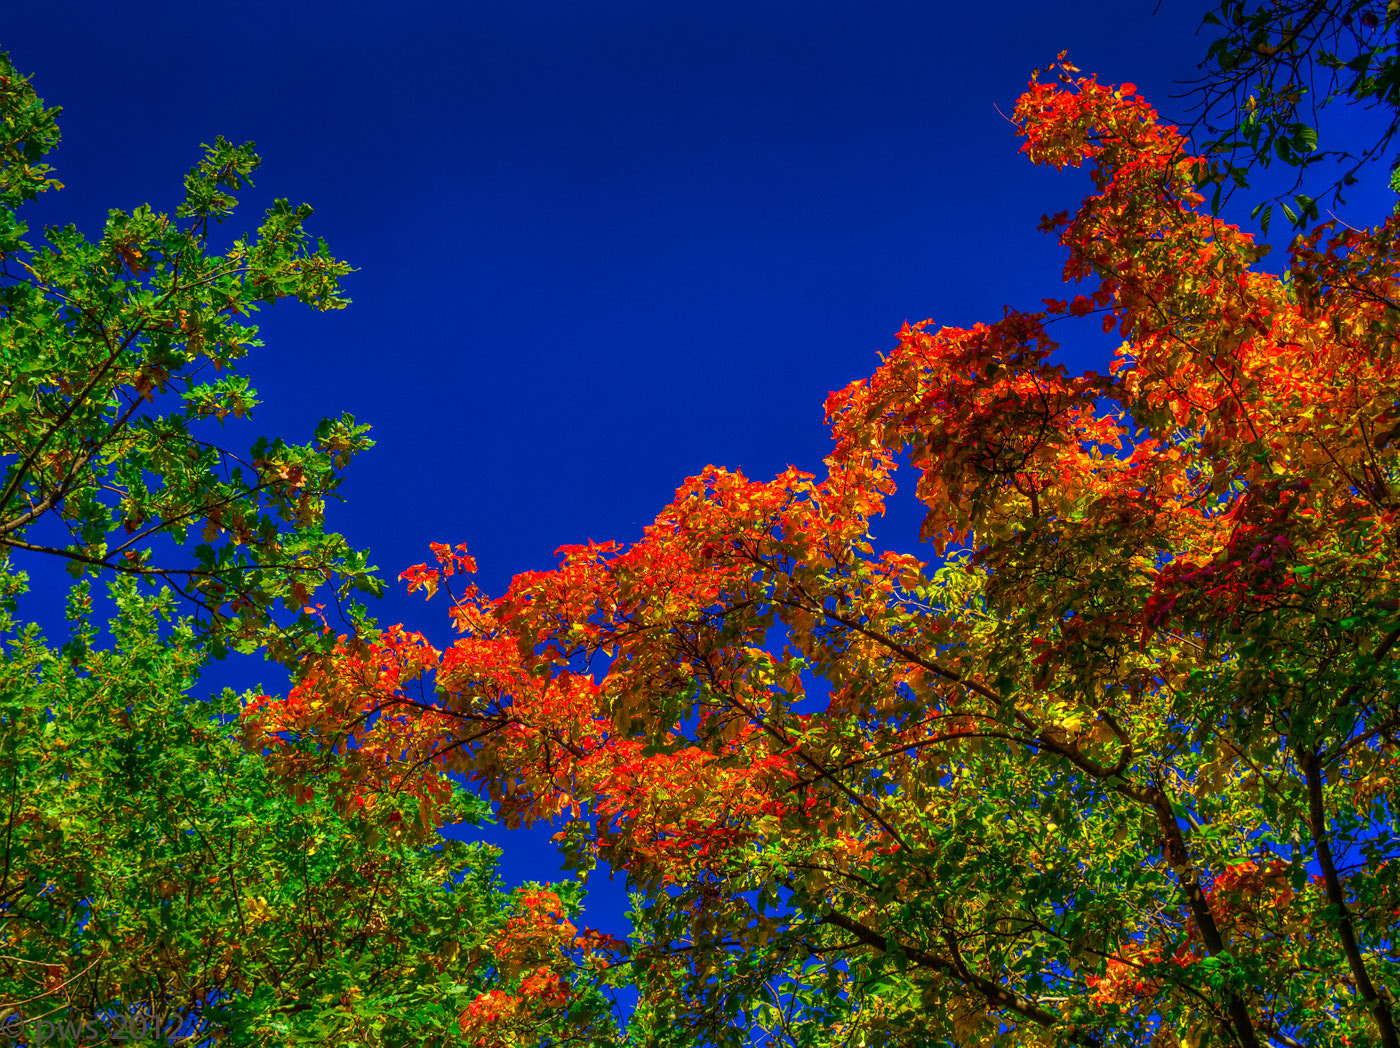 Photograph autumn's colors by Paul Werner Suess on 500px